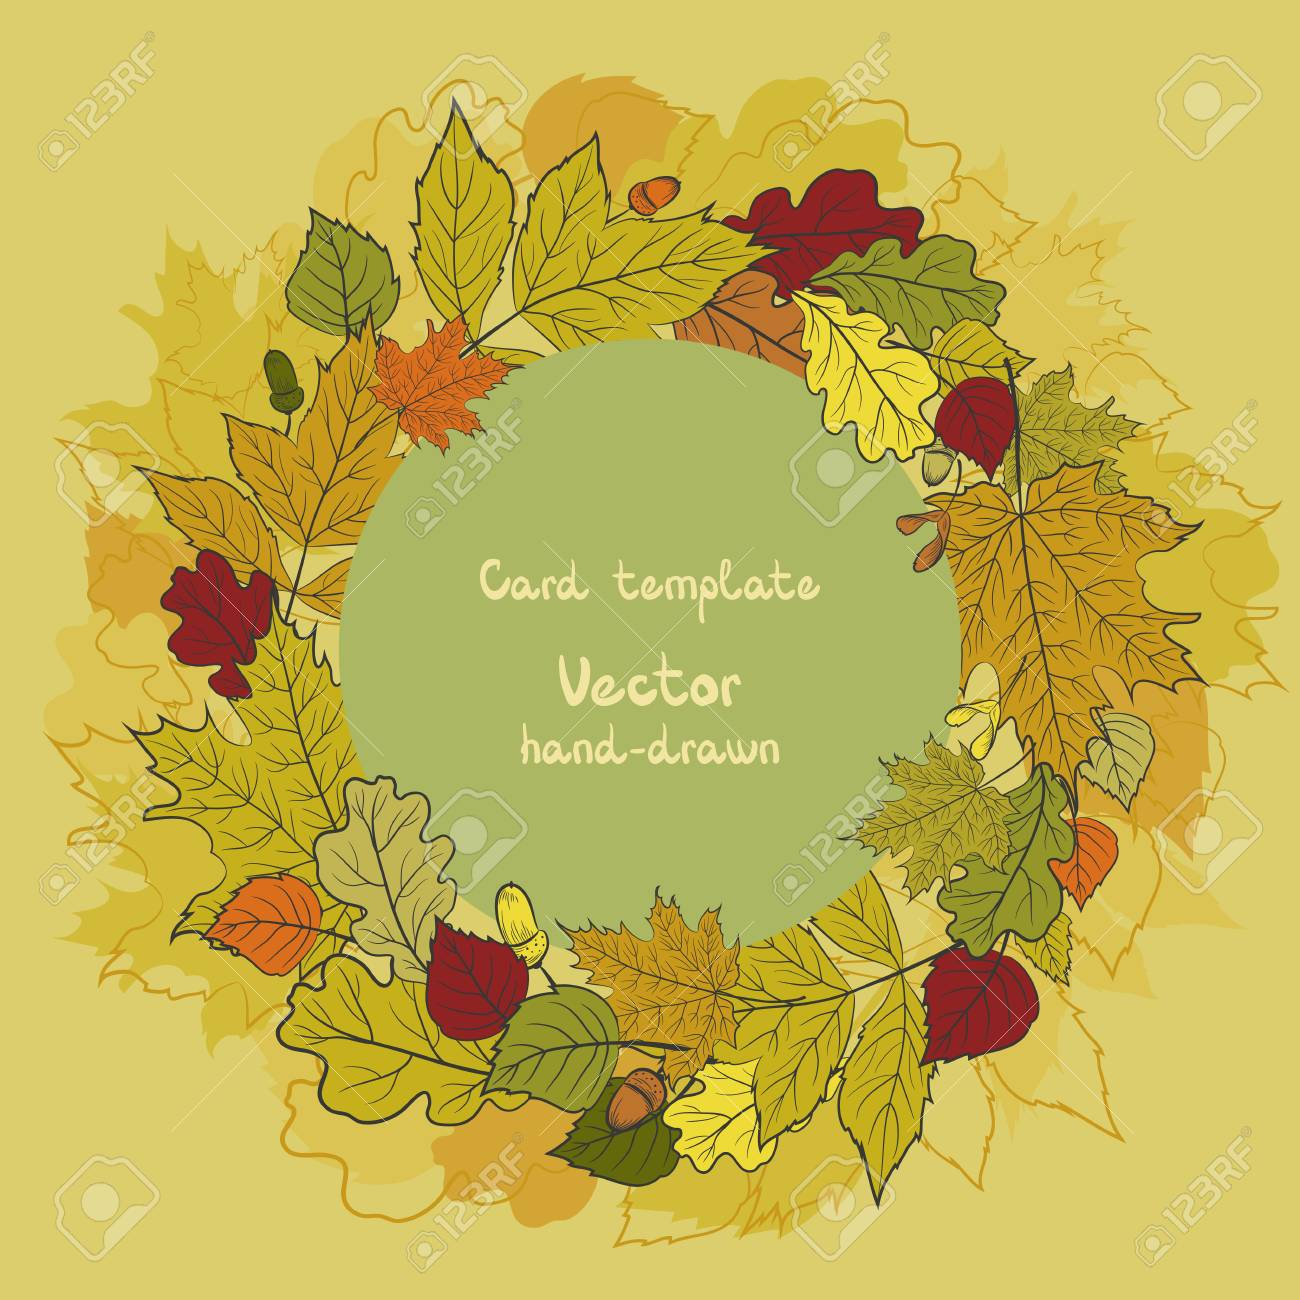 round vector card template with colorful autumn leaves and